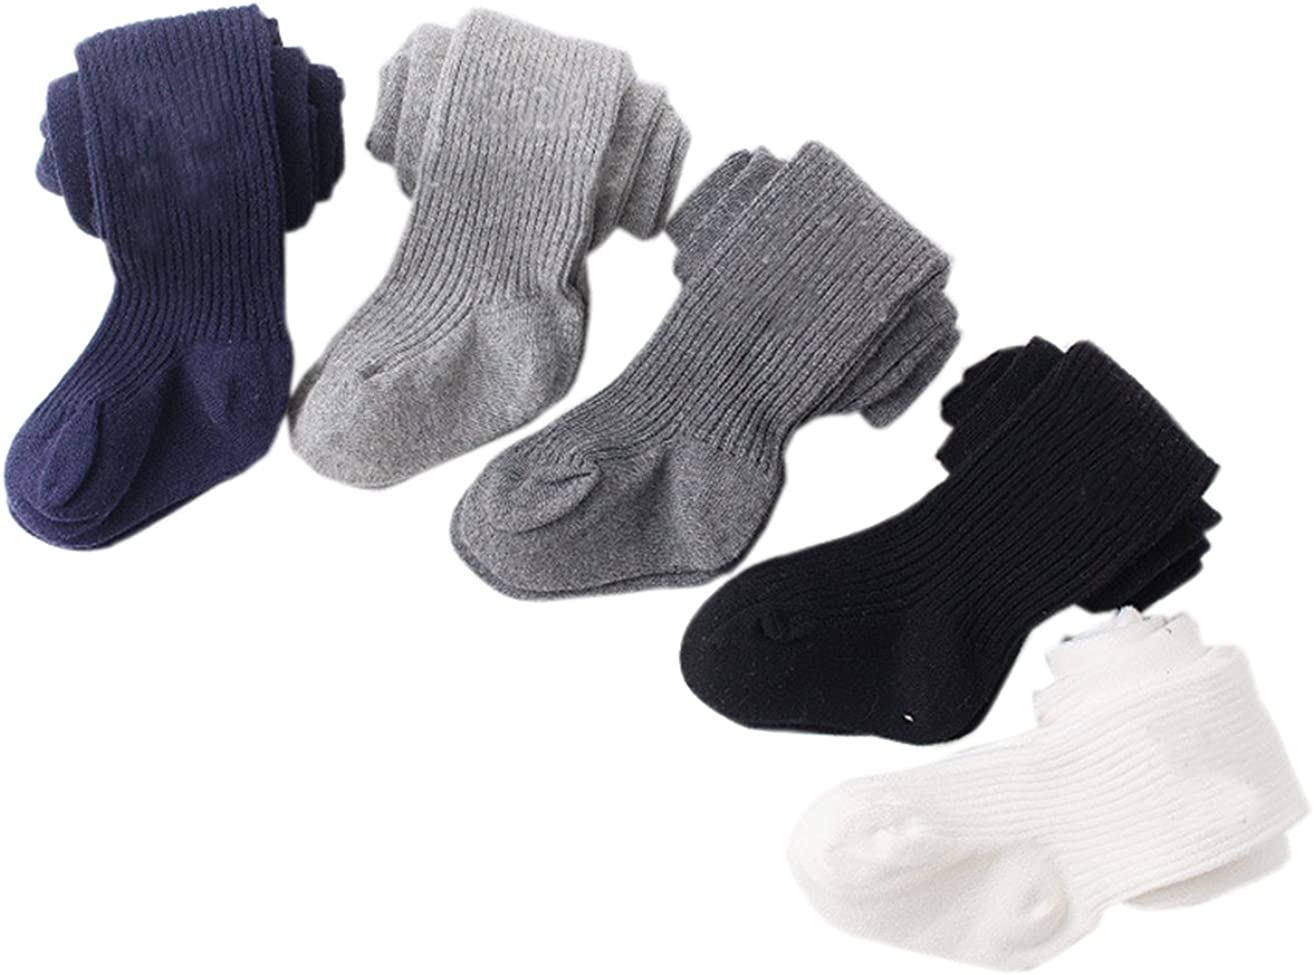 Socks for 0-4 Years Khaki Tininna 2 x Baby Girls/' Cotton Stretch Winter Knitted Tights